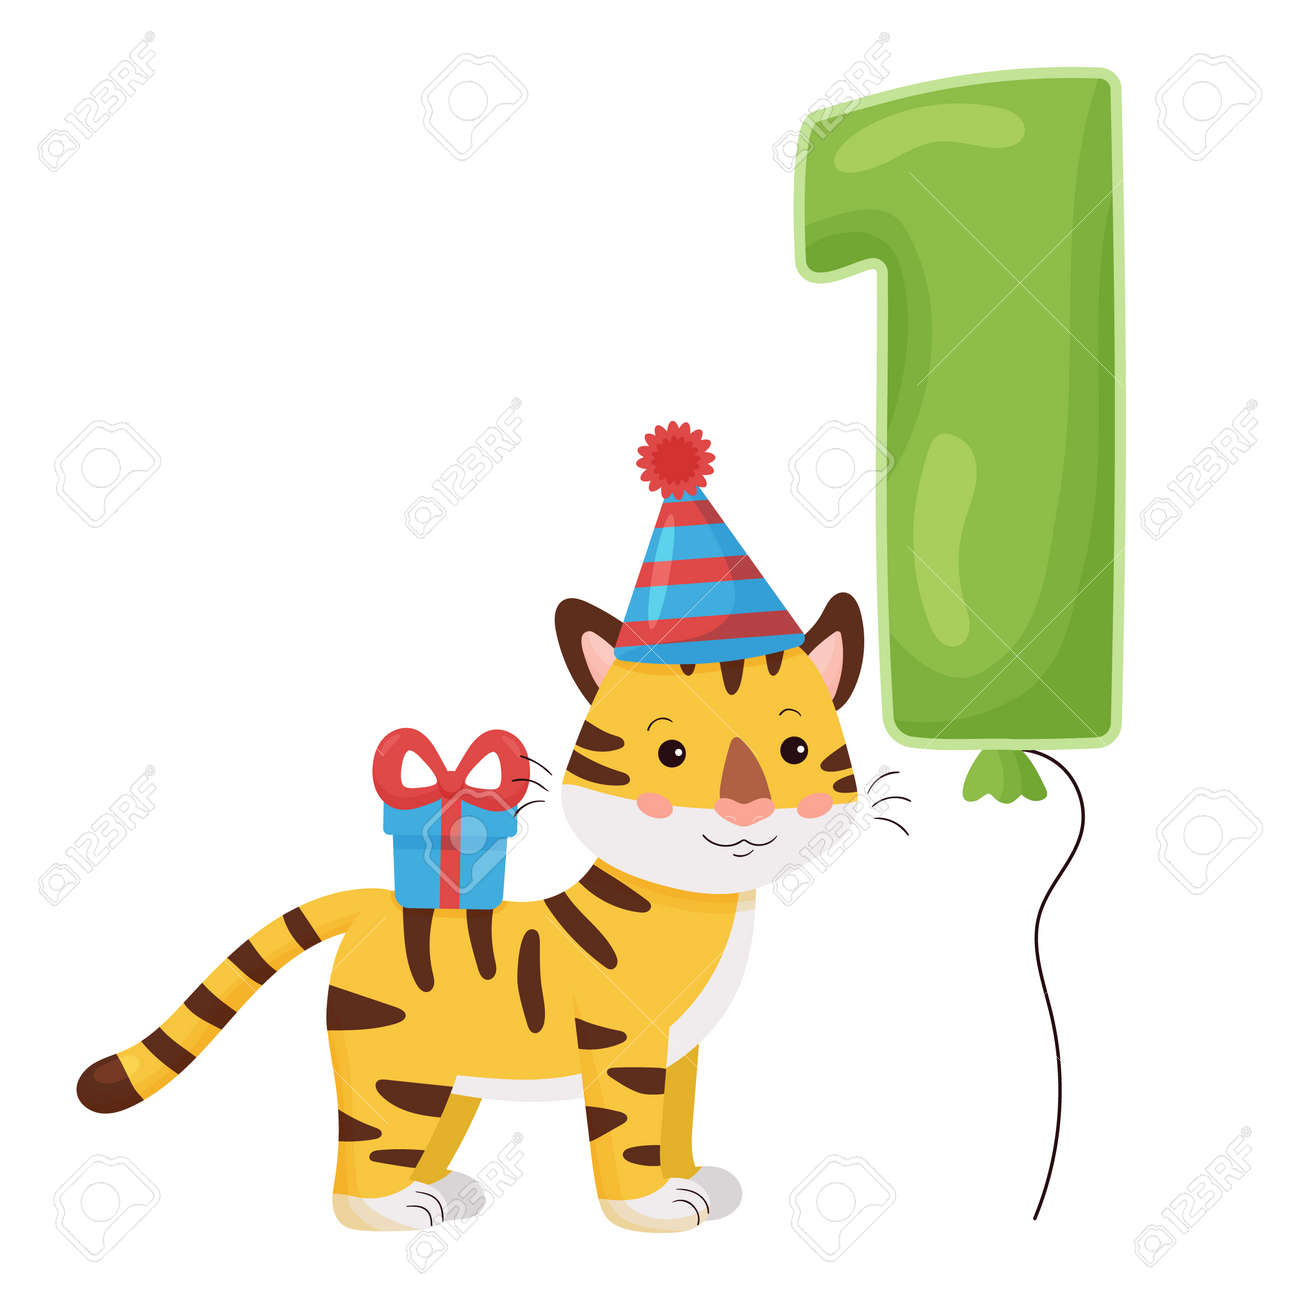 Cute cartoon tiger with number balloon. Vector illustration Happy Birthday. Greeting and invitation card design for one year old children. - 168077371